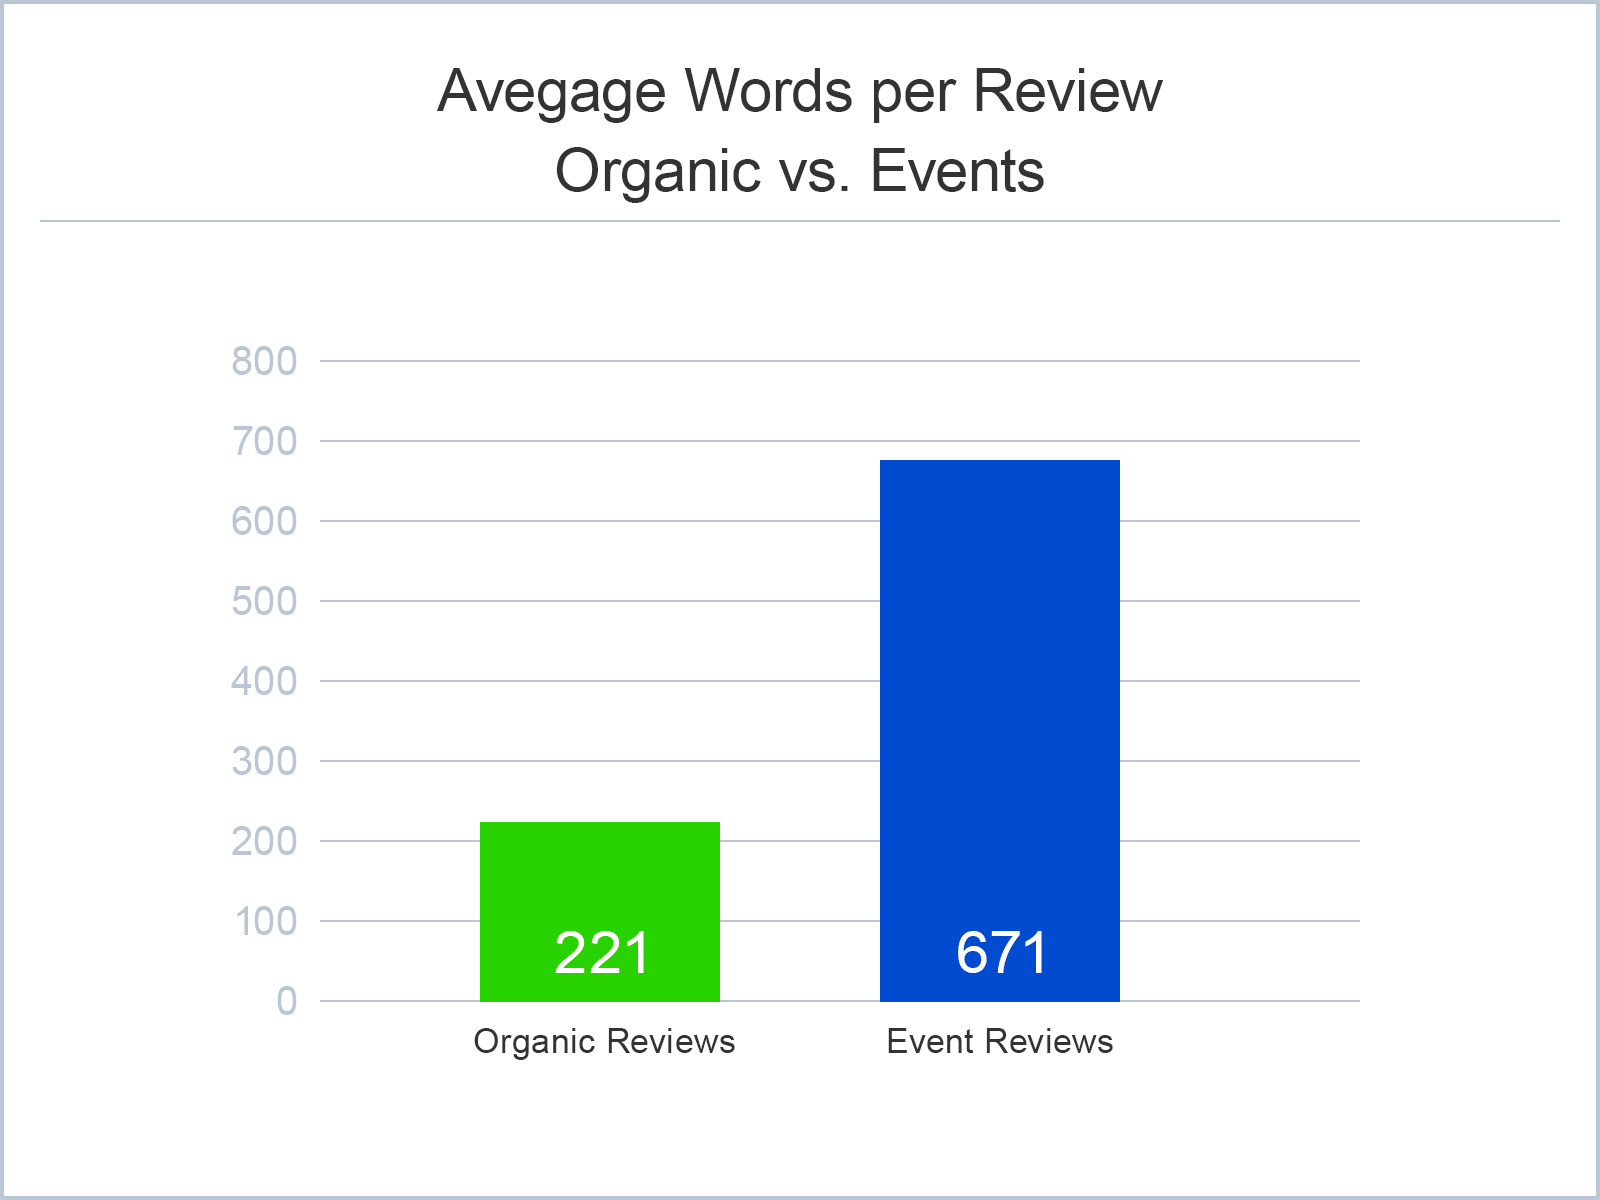 Reviews from events are 3x longer on average than reviews submitted organically